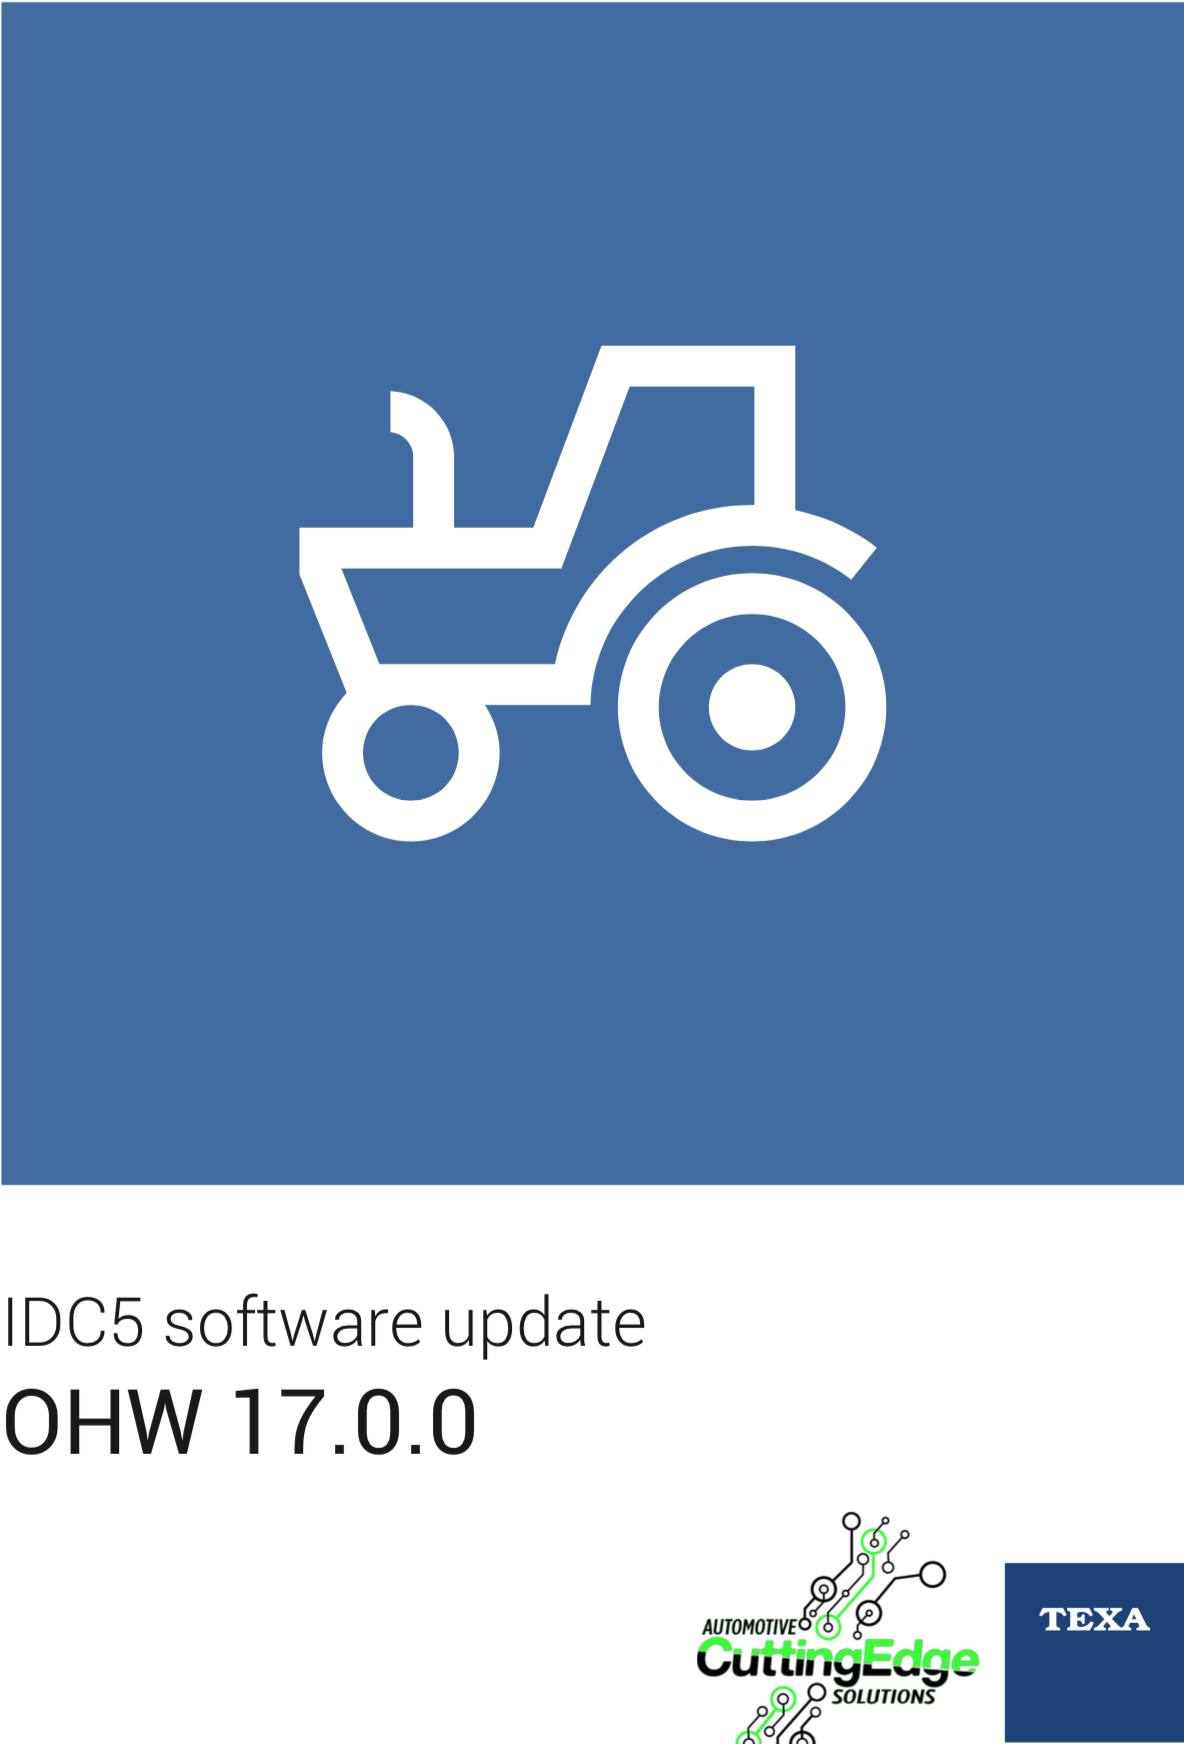 IDC5 software update OHW 17.0.0